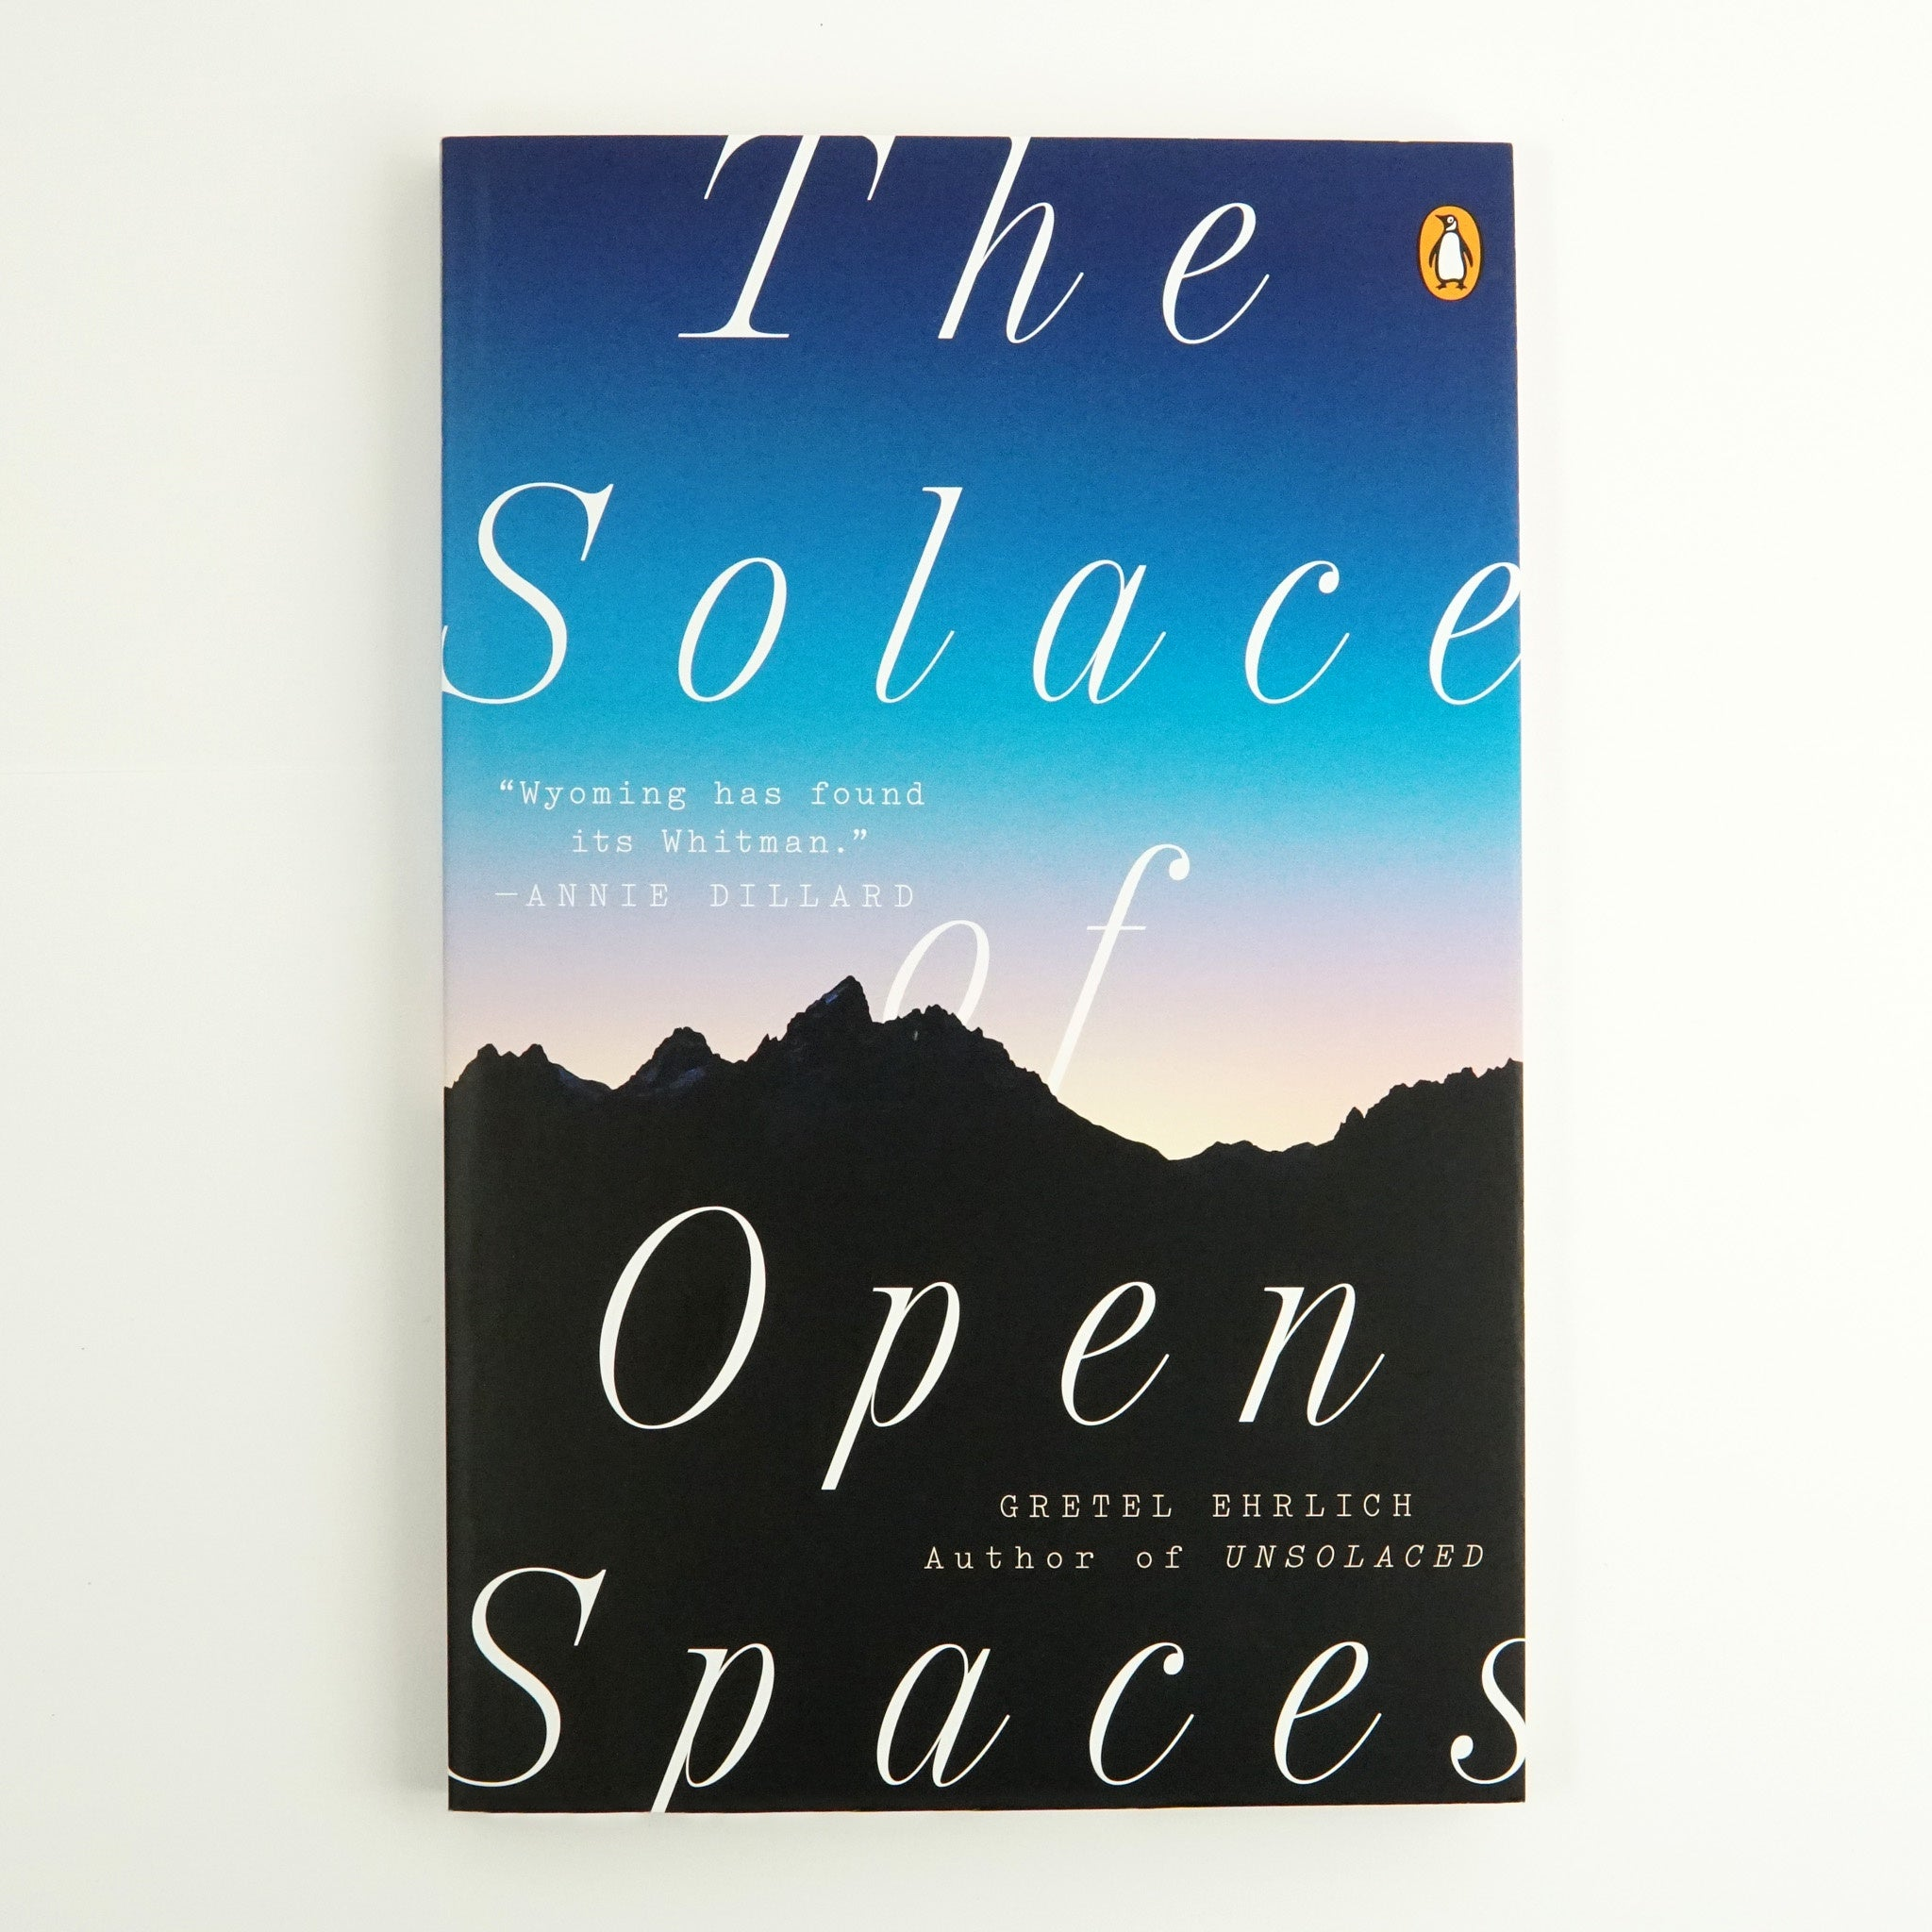 BK 9 SOLACE OF OPEN SPACES BY GRETEL EHRICH